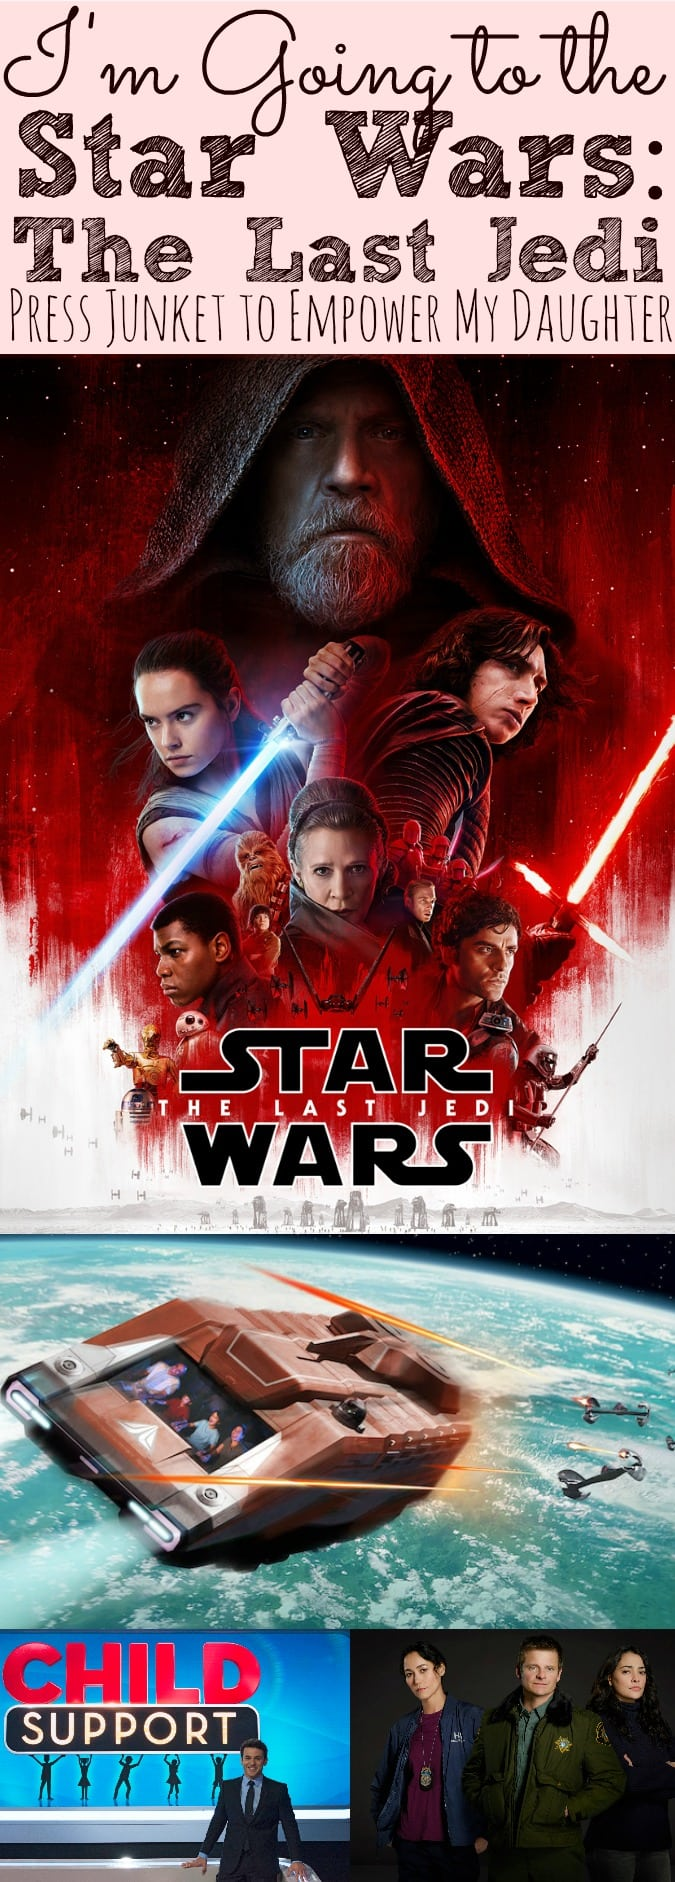 I'm Going To The Star Wars: The Last Jedi Press Junket To Empower My Daughter #TheLastJediEvent - simplytodaylife.com